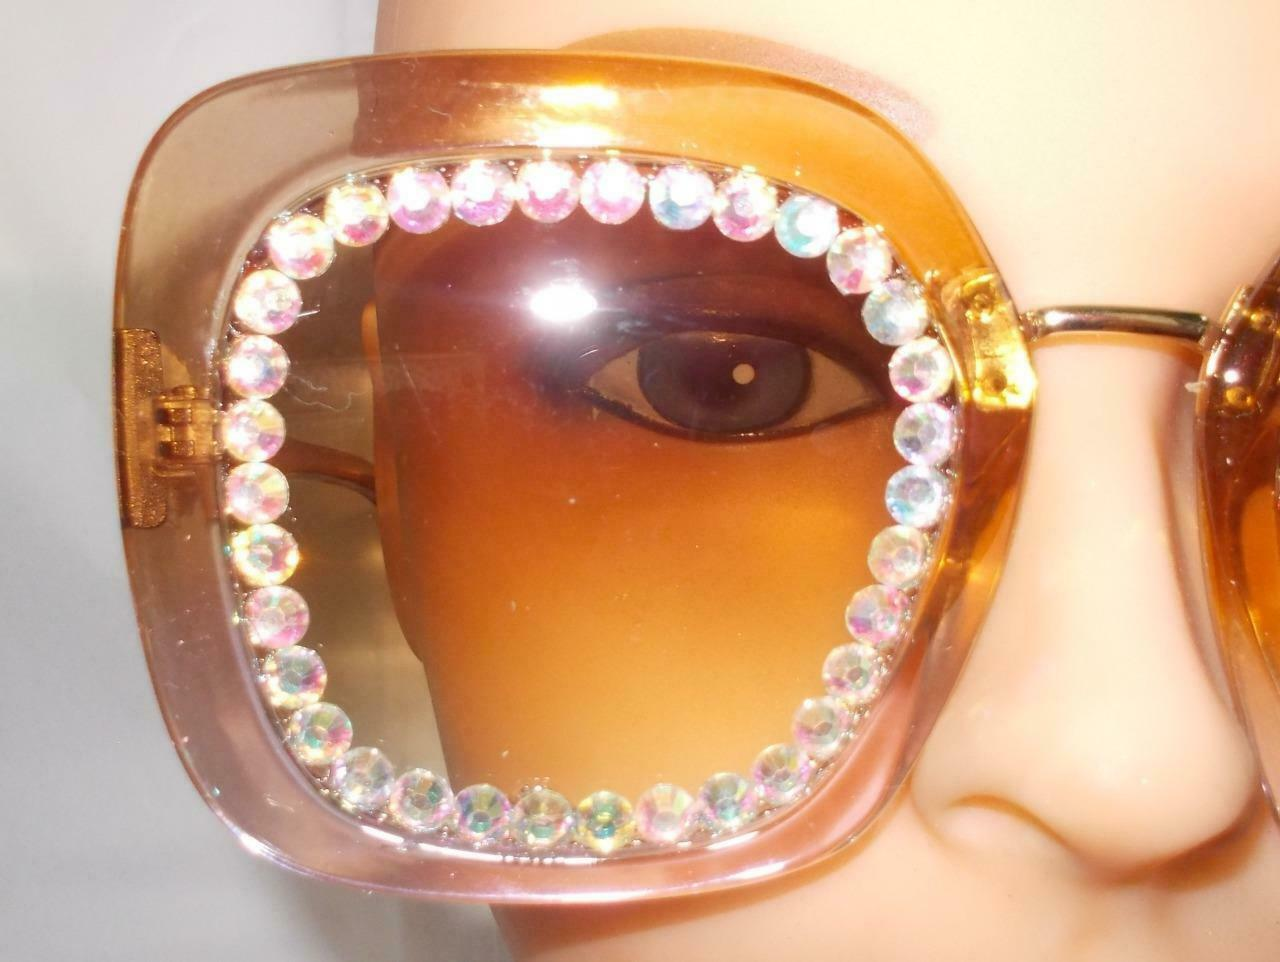 2021 SUN GLASSES OVERSIZED 5 COLORS WITH RHINESTONES FREE SHIP AND POUCH